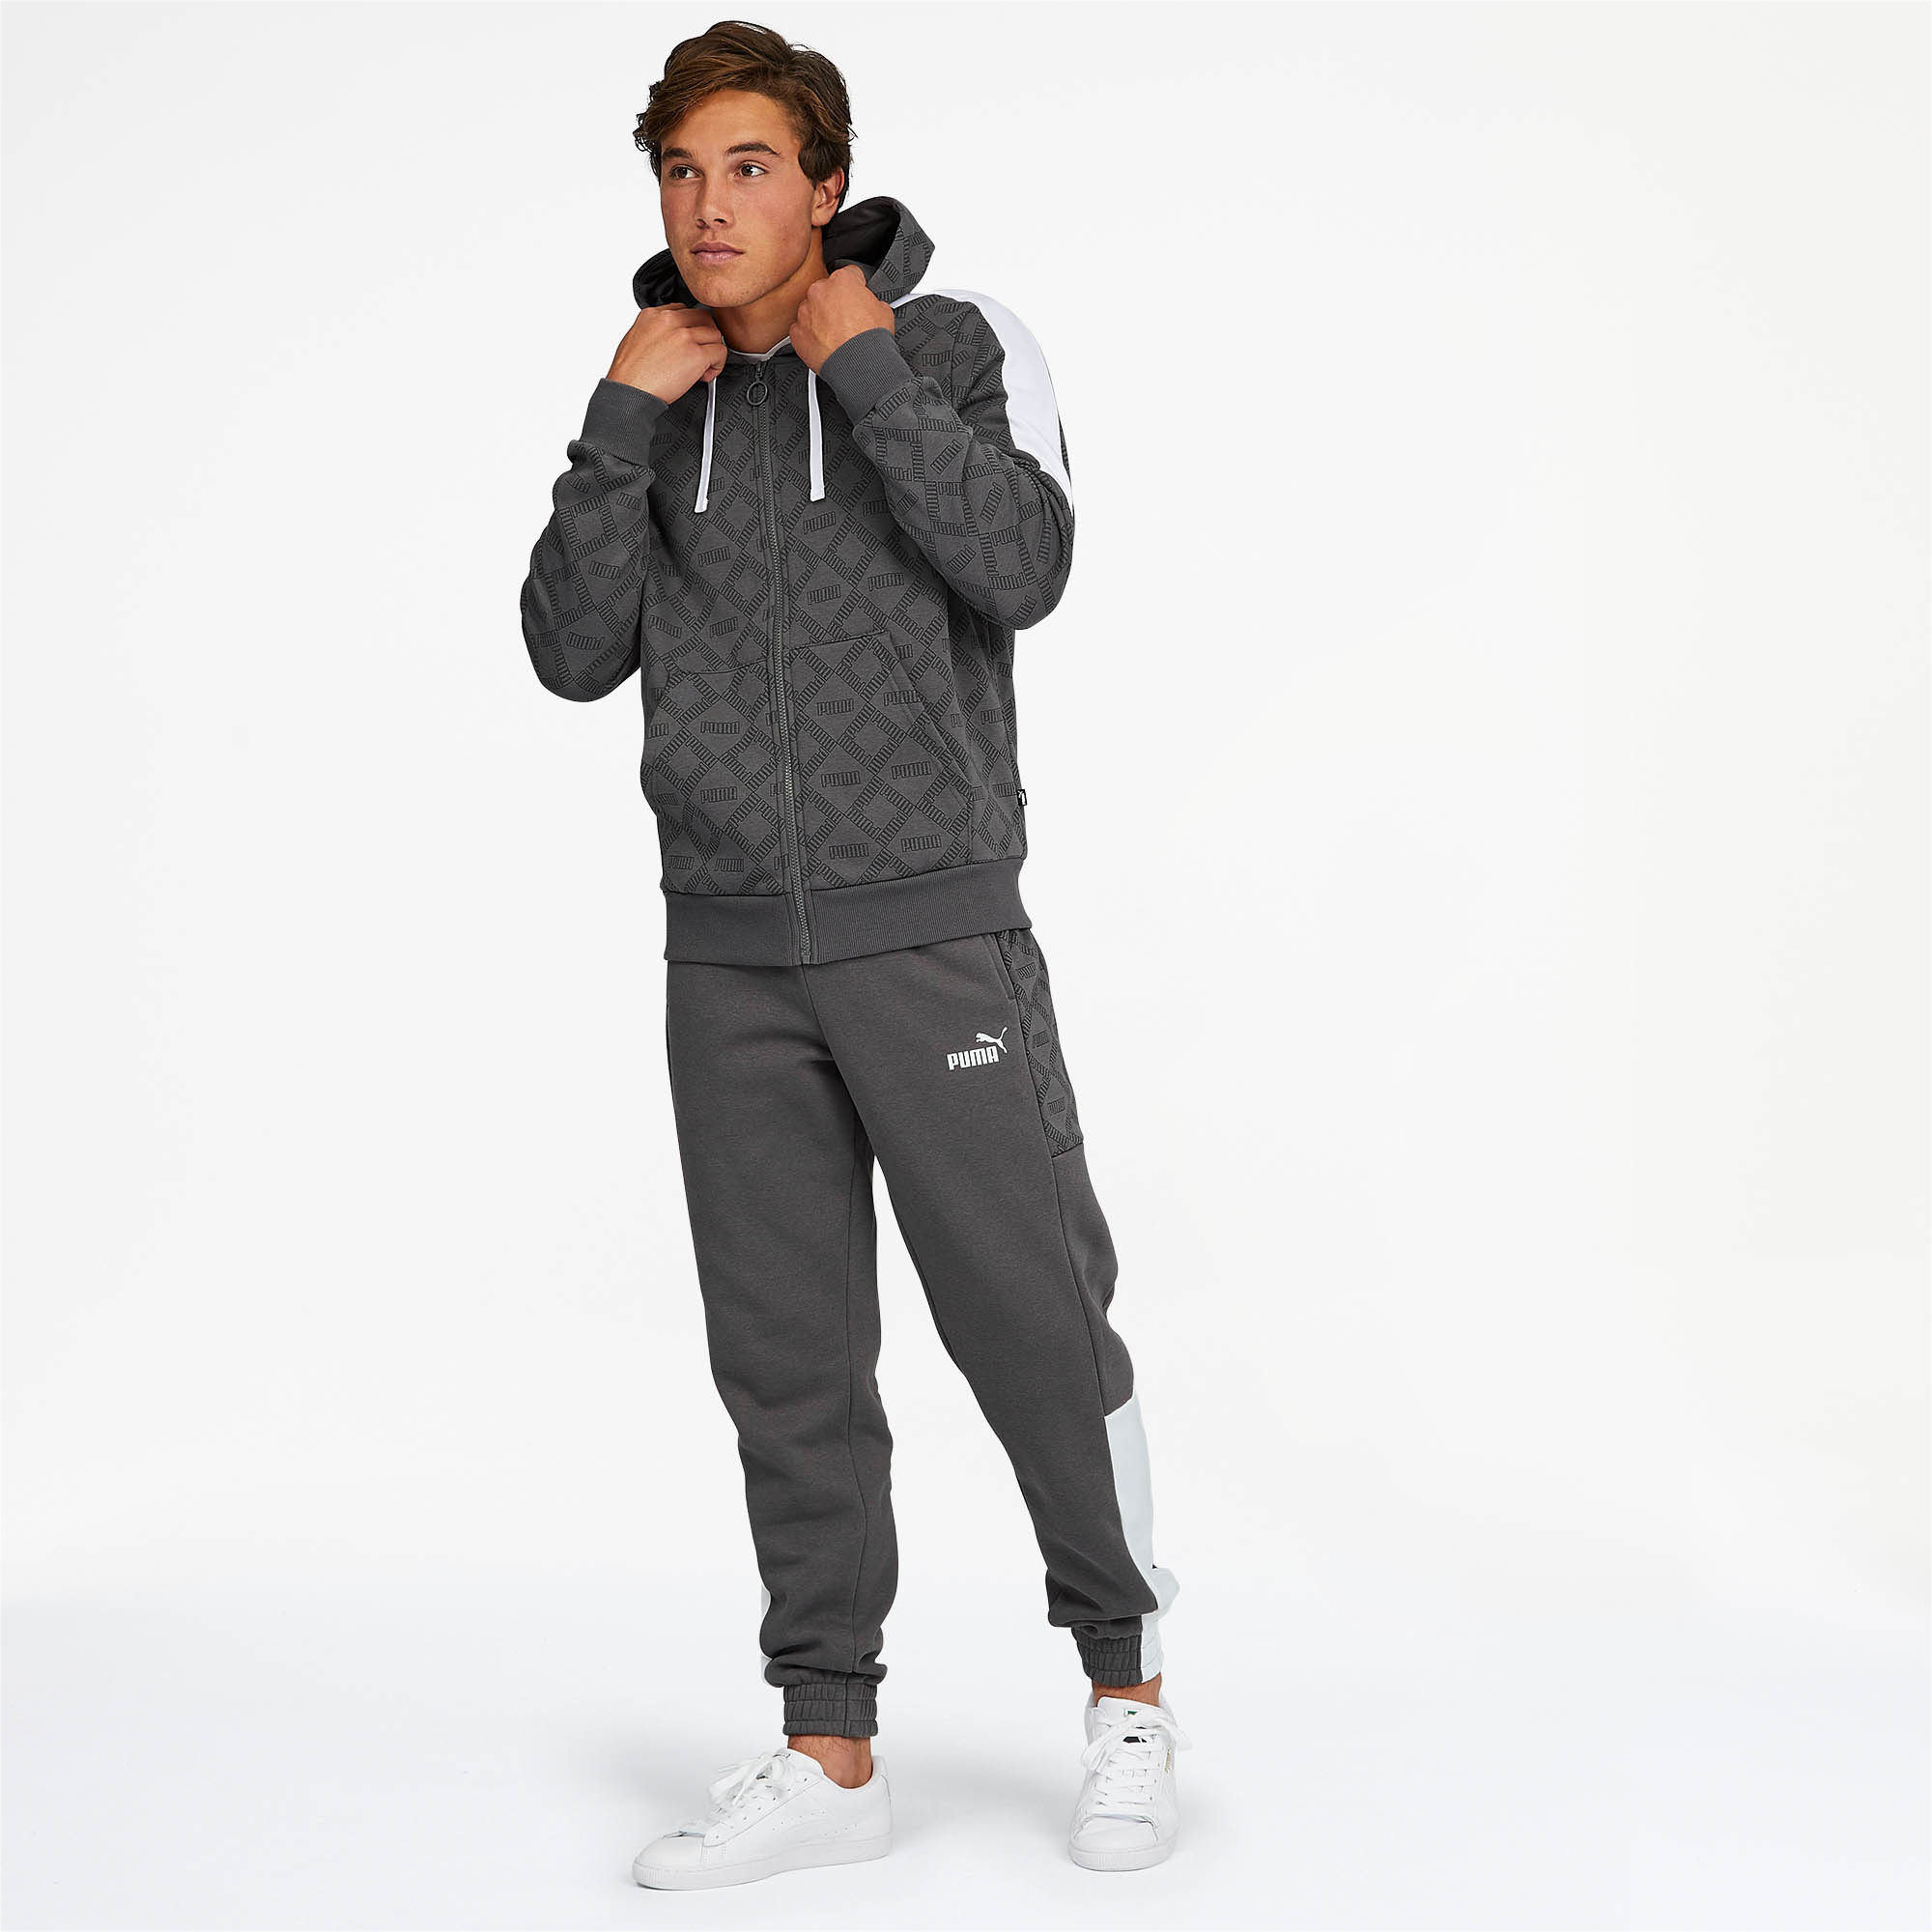 PUMA-Logo-AOP-Pack-Men-039-s-Hoodie-Men-Sweat-Basics thumbnail 25